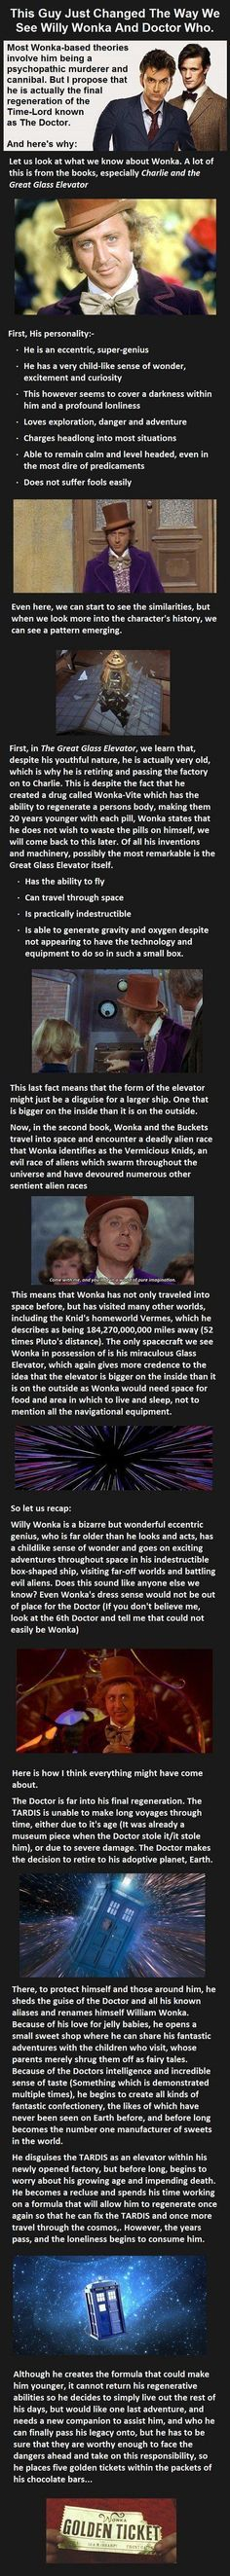 AWESOME THEORY ABOUT WILLIE WONKA AND THE DOCTOR!!!!!!!